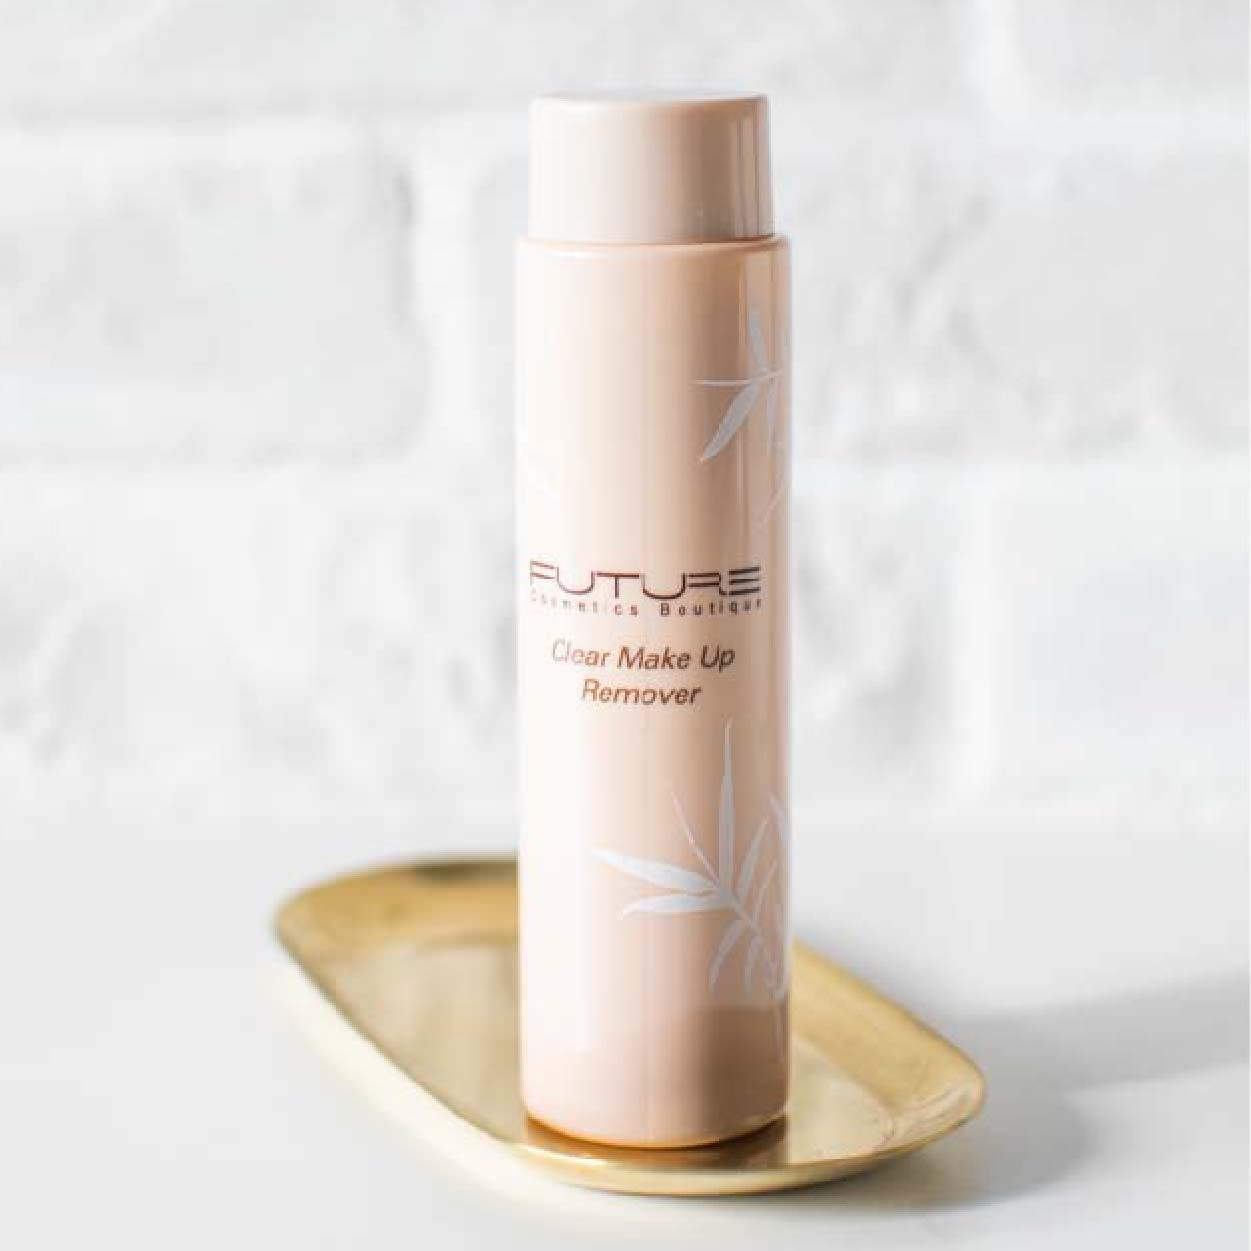 Future Cosmetics Lotions and Cleansers